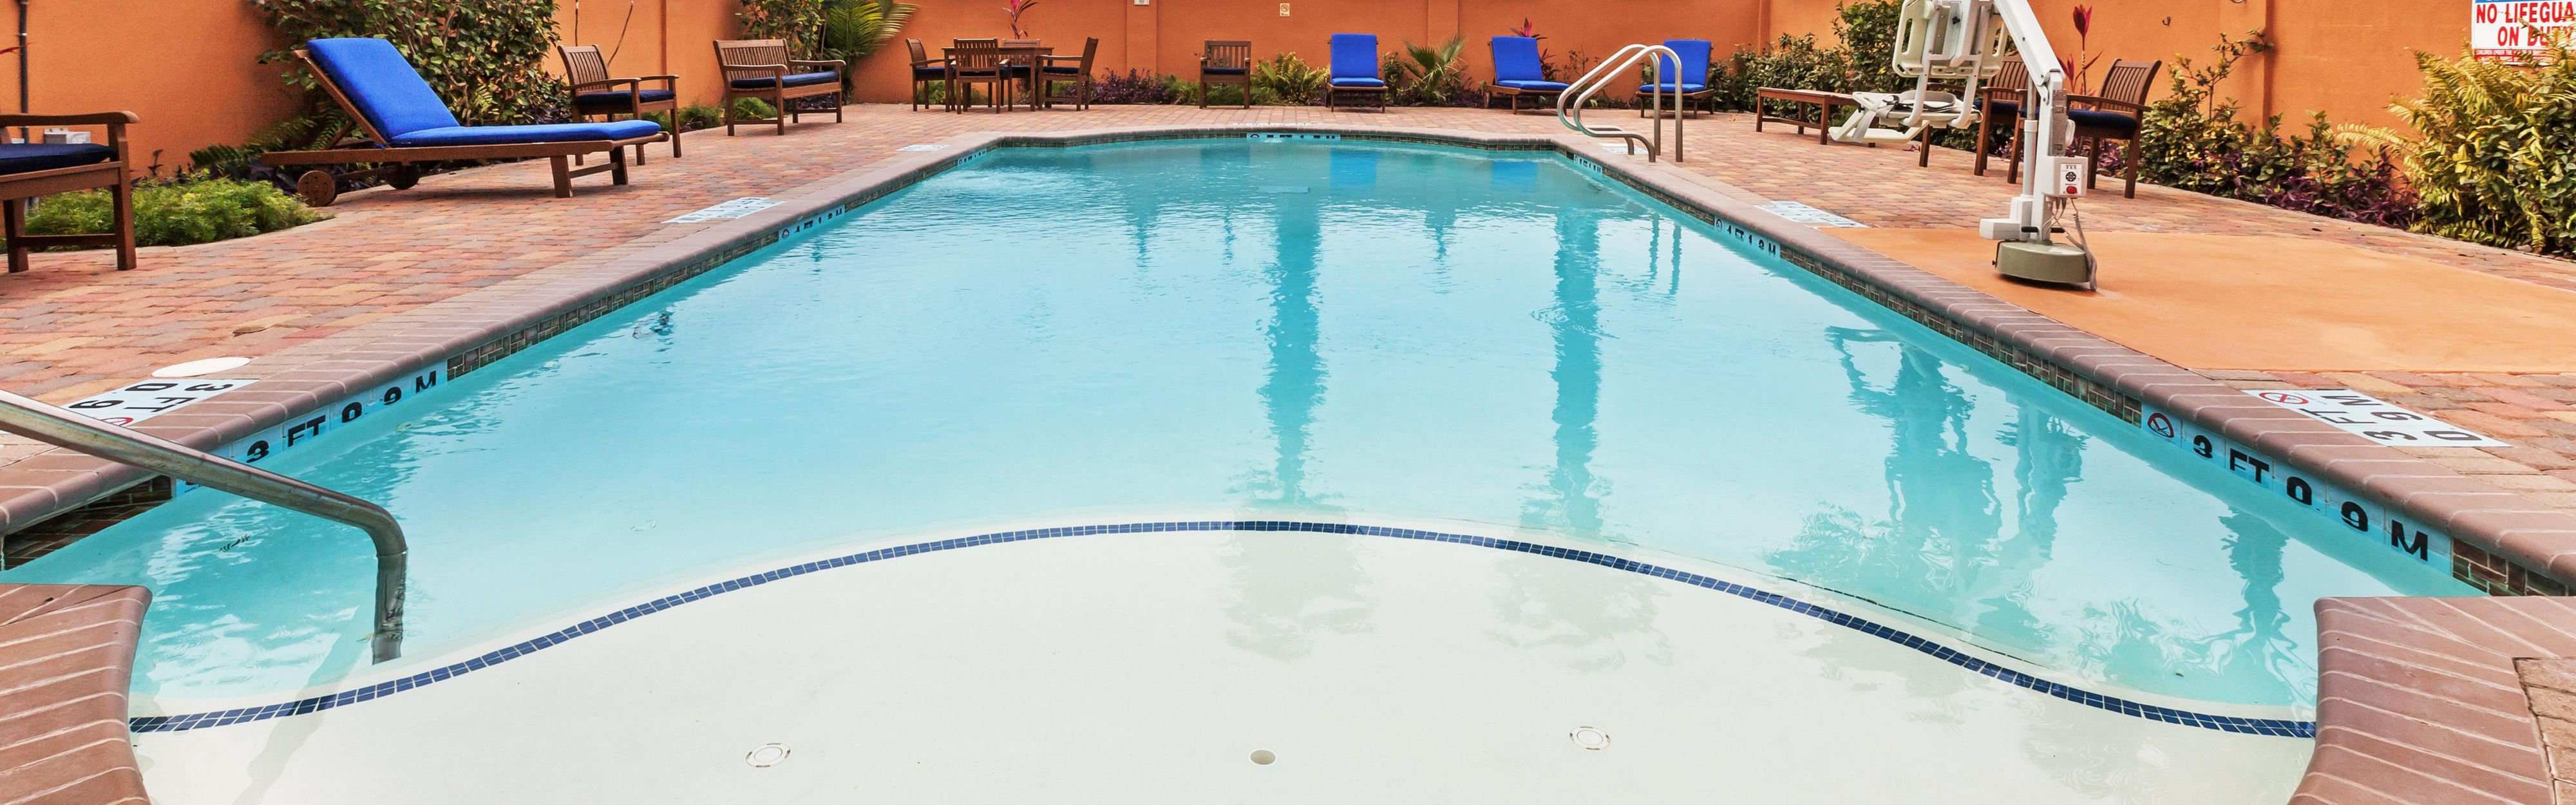 Holiday Inn Express & Suites Corpus Christi NW - Calallen image 2